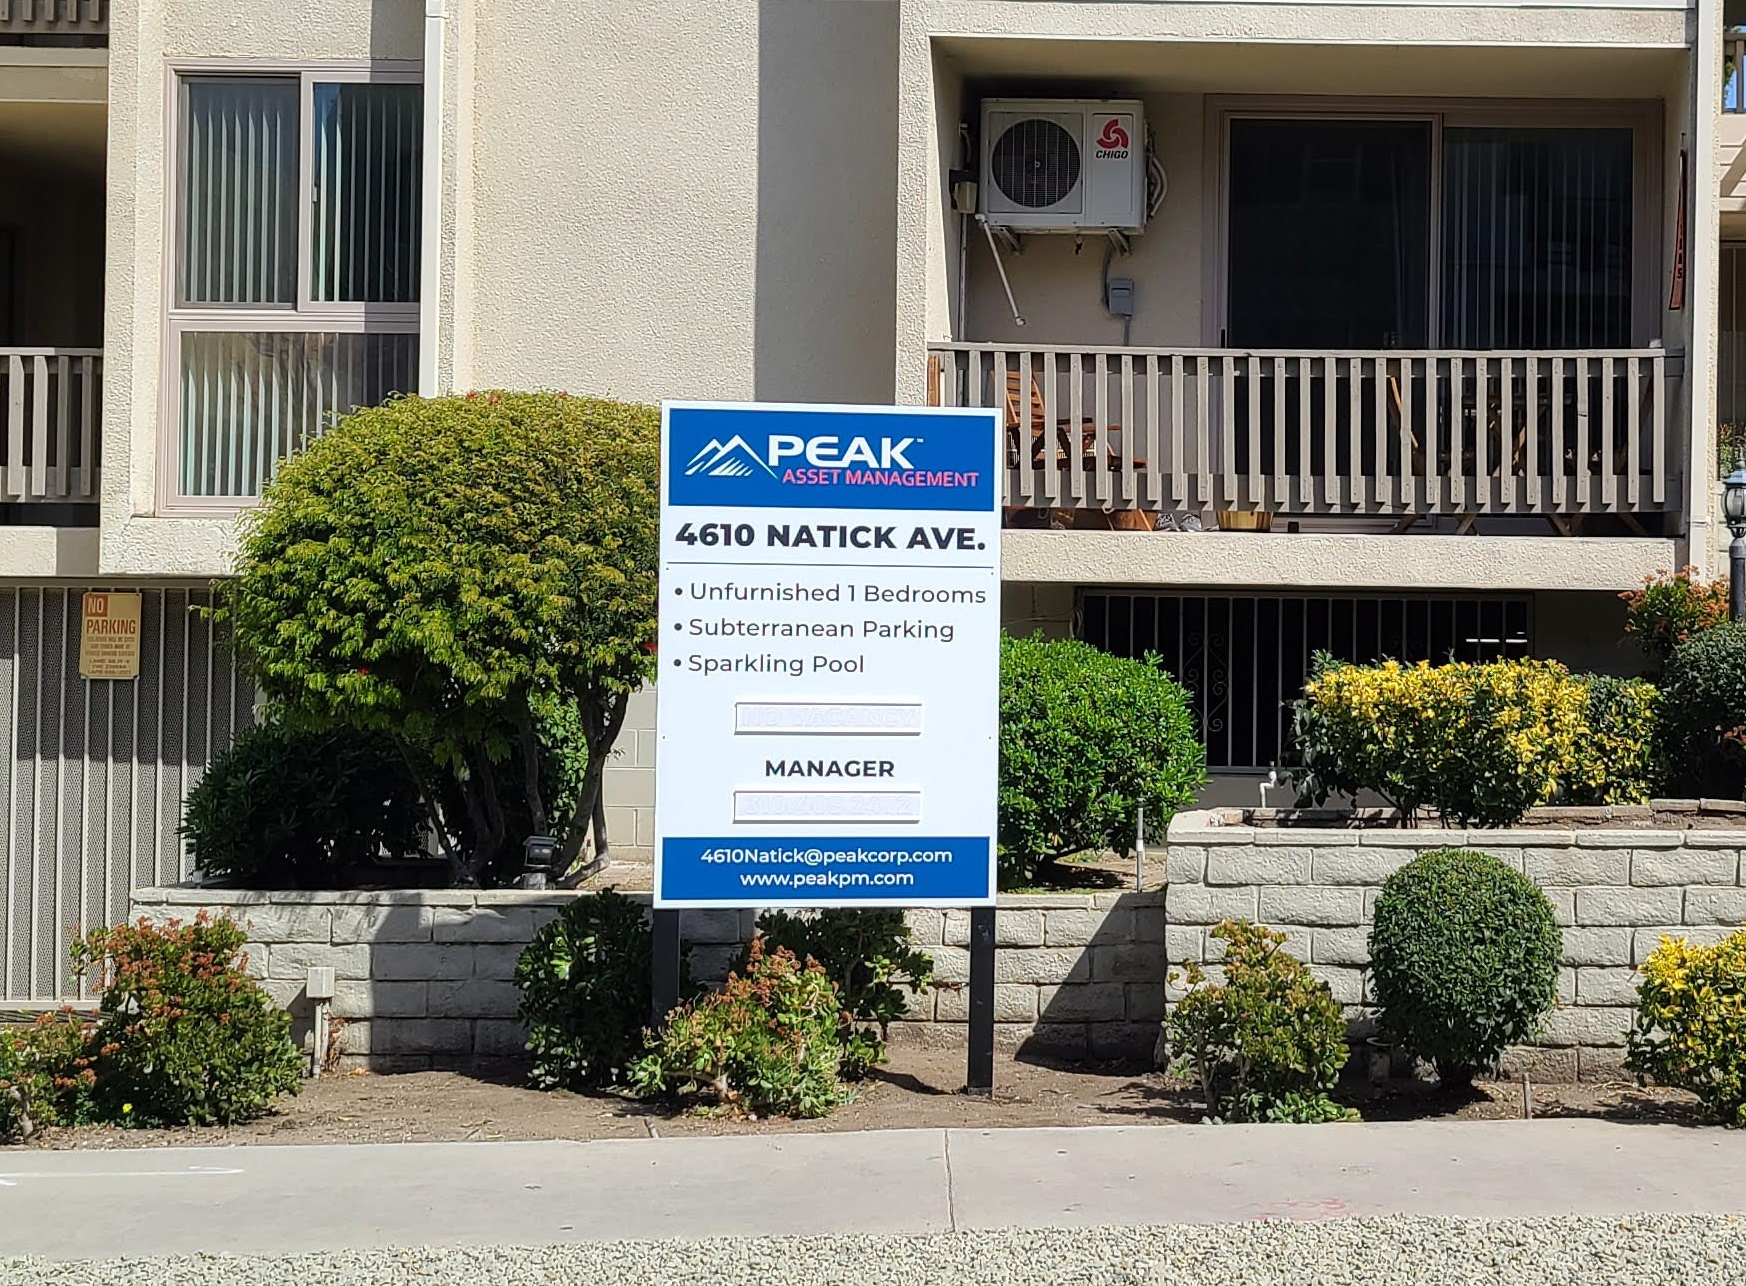 This is the post and panel real estate sign for our old friends Peak for their Natick Avenue apartment in Sherman Oaks.